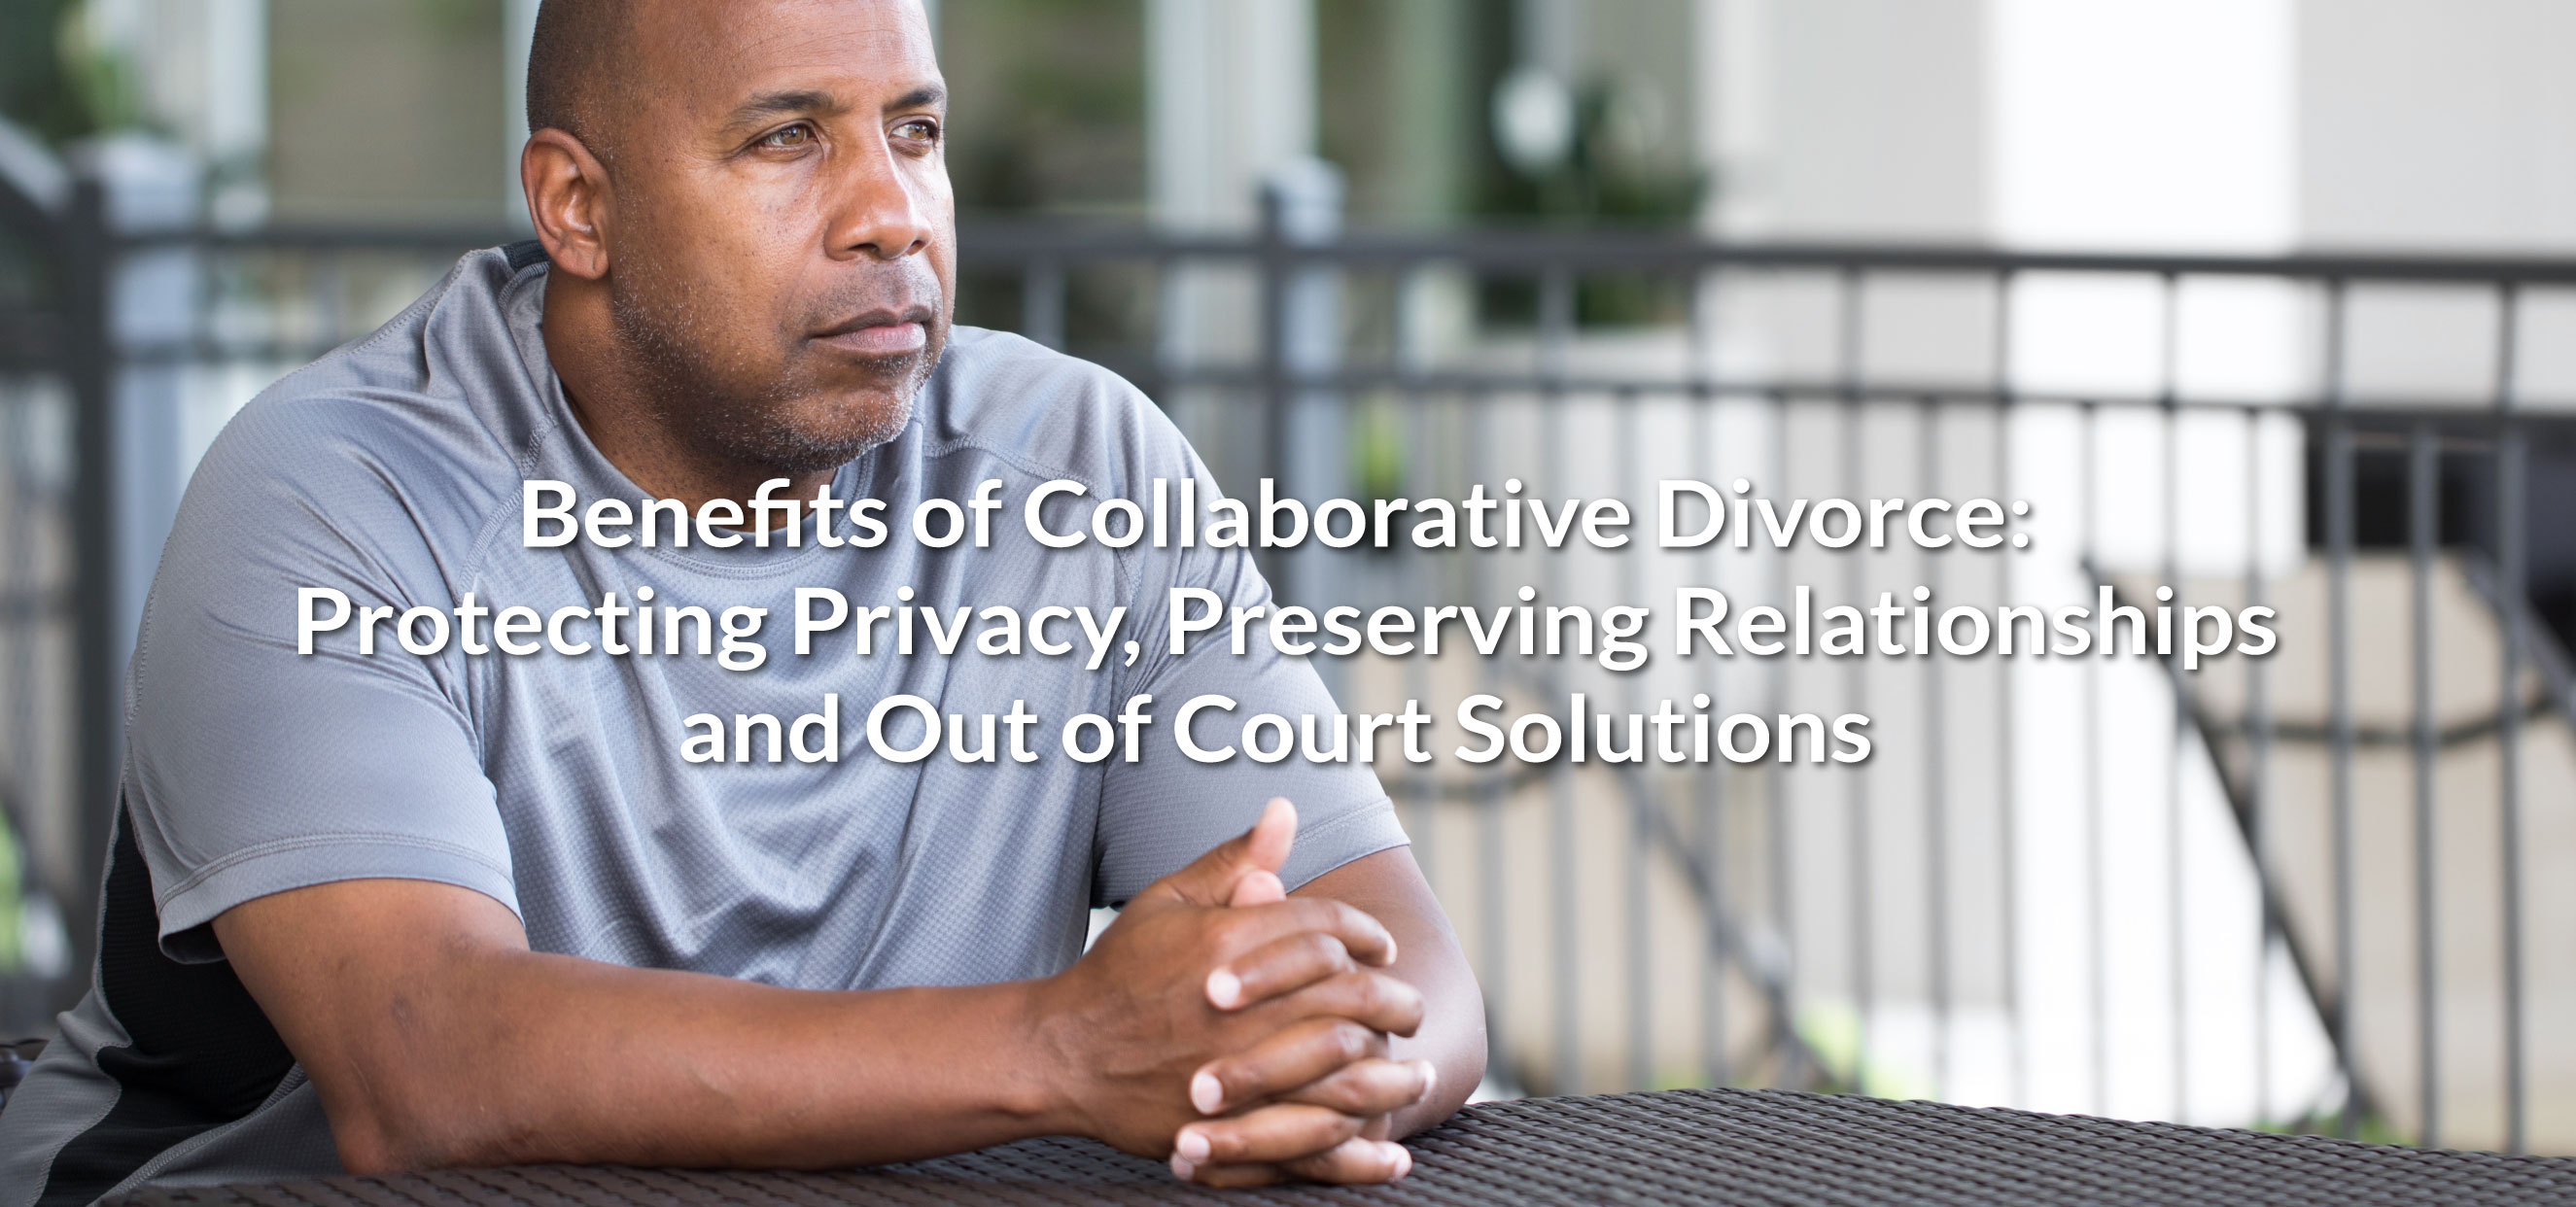 Benefits of Collaborative Divorce: Protecting Privacy, Preserving Relationships, Out of Court Solutions